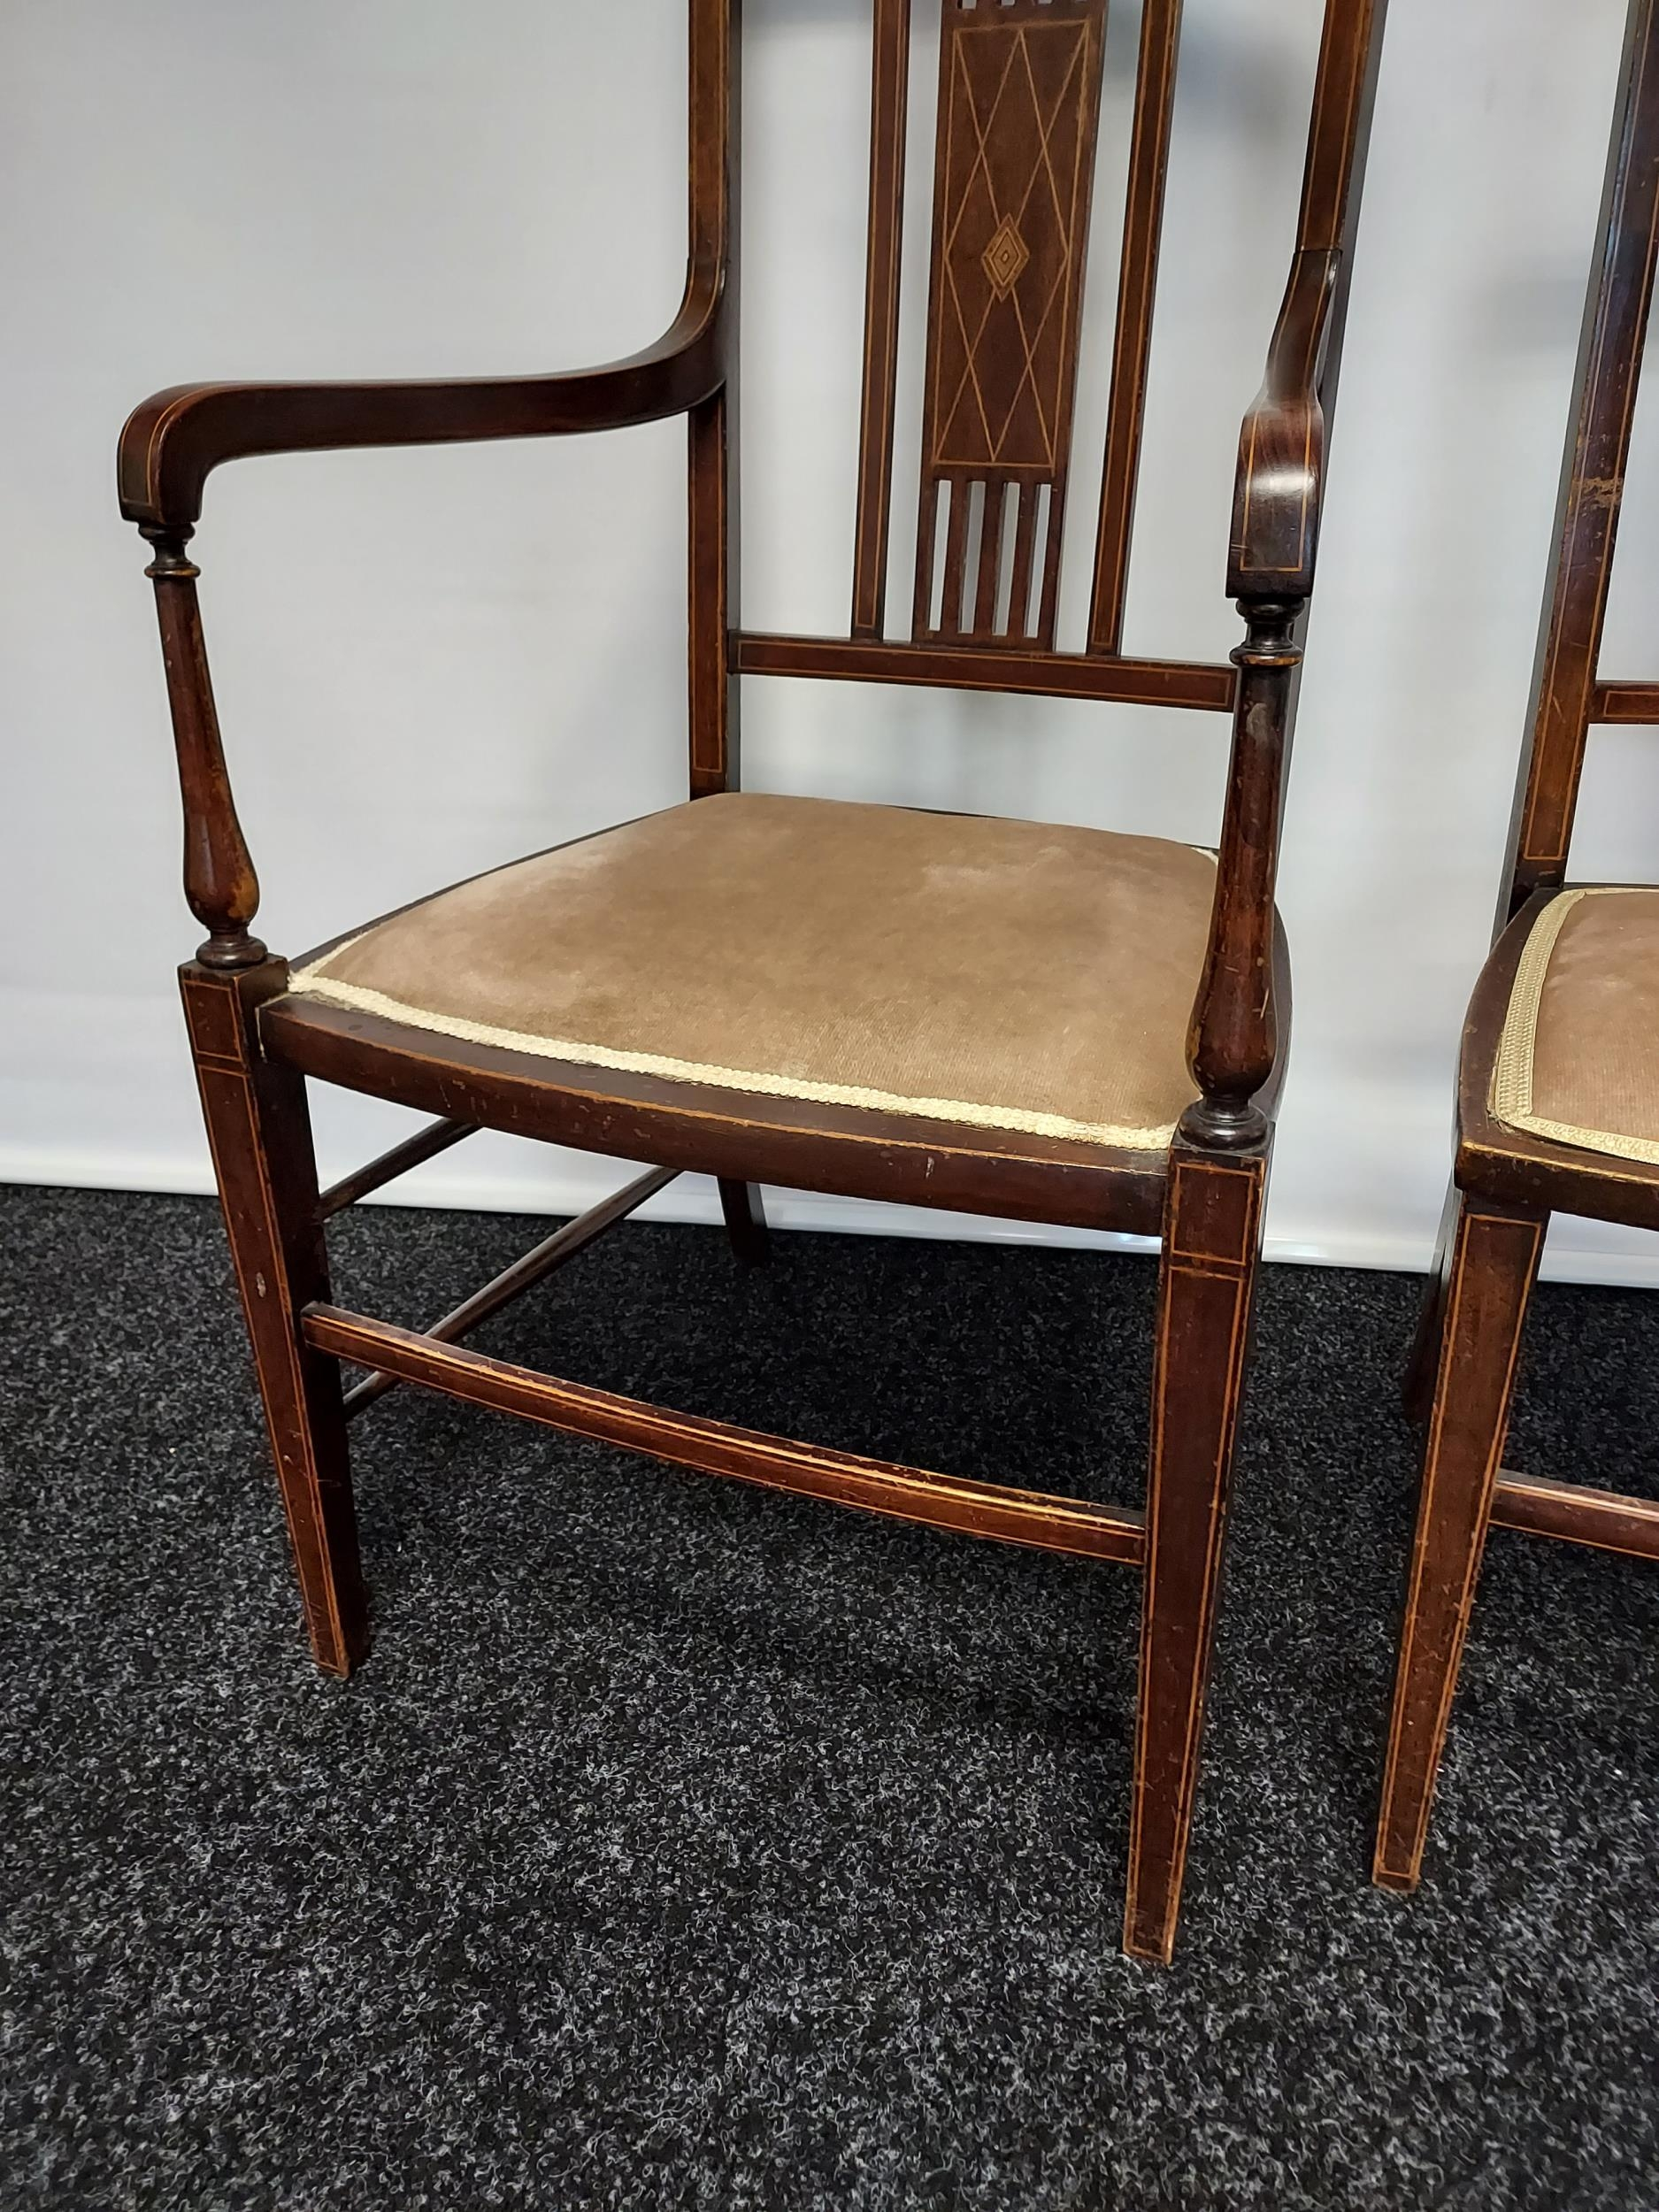 Edwardian inlaid armchair with partner chair - Image 3 of 4